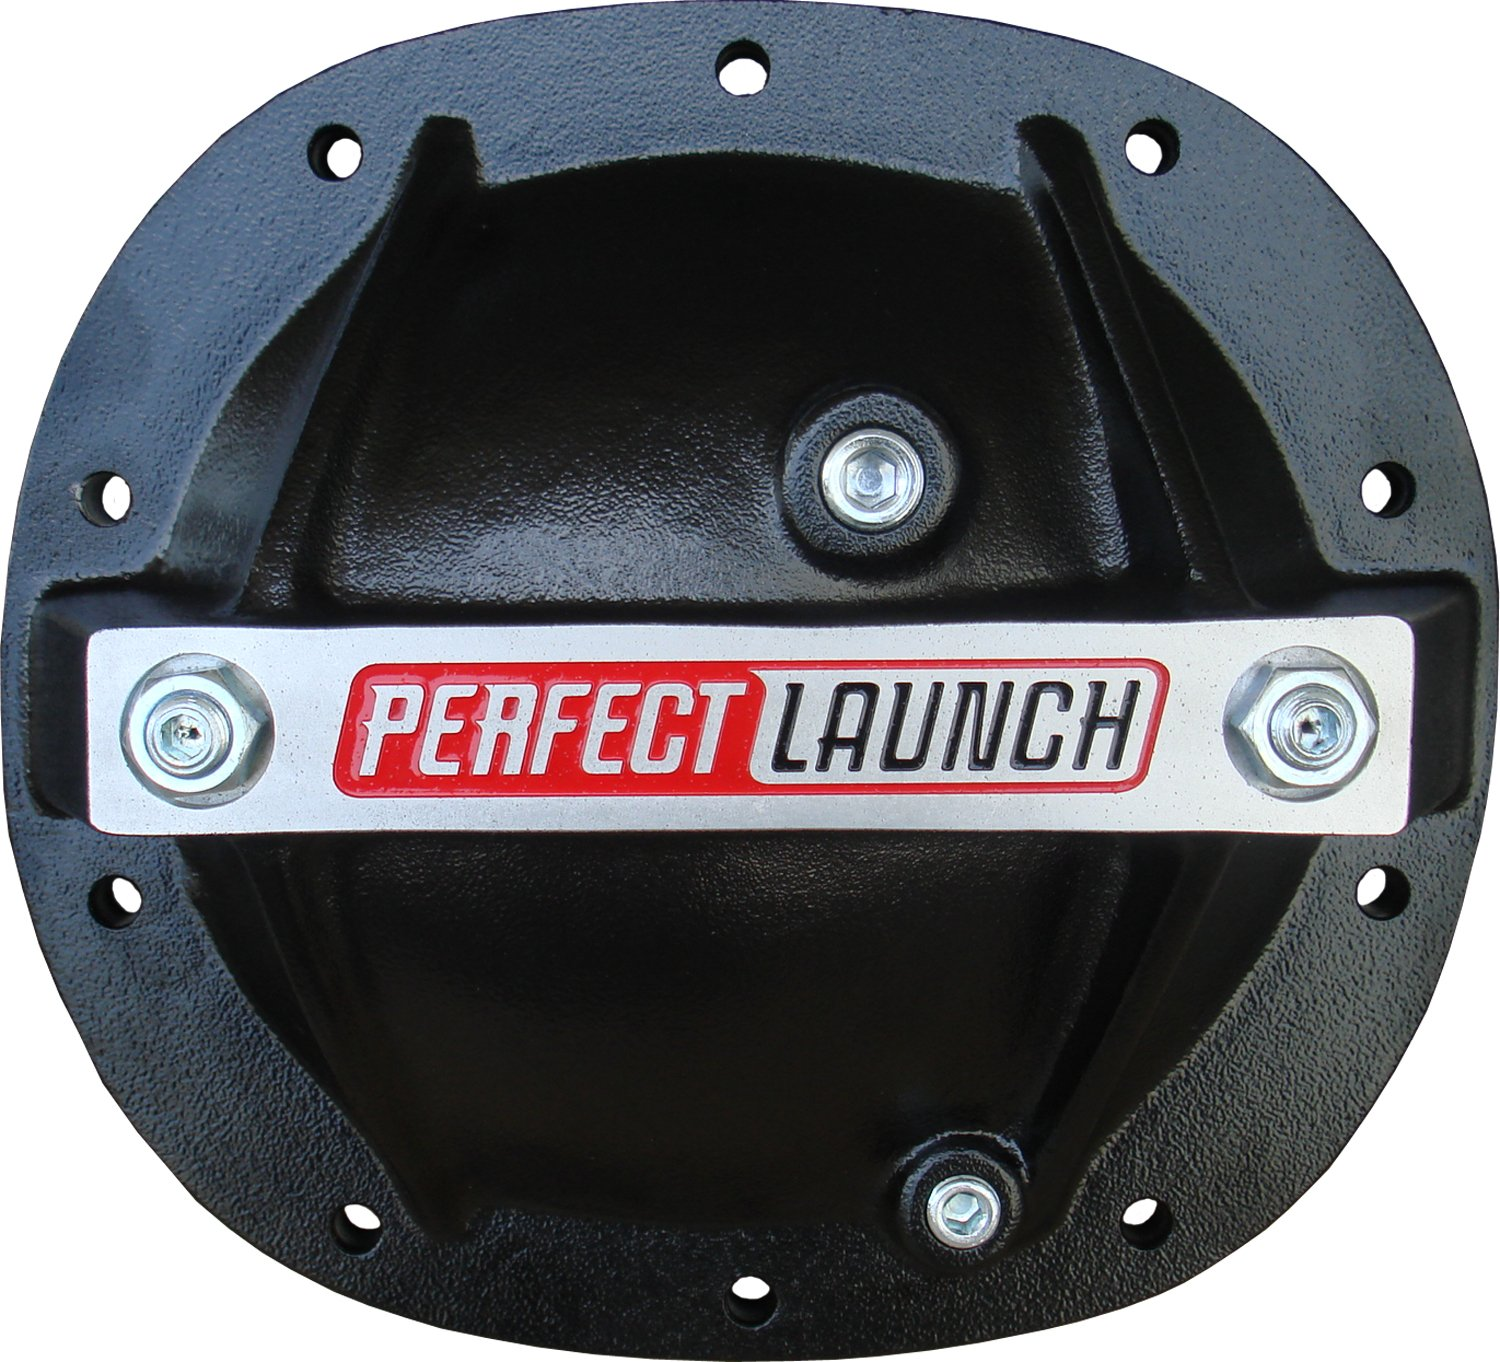 Proform 66667 Black Aluminum Differential Cover with Perfect Launch Logo and Bearing Cap Stabilizer Bolts for GM